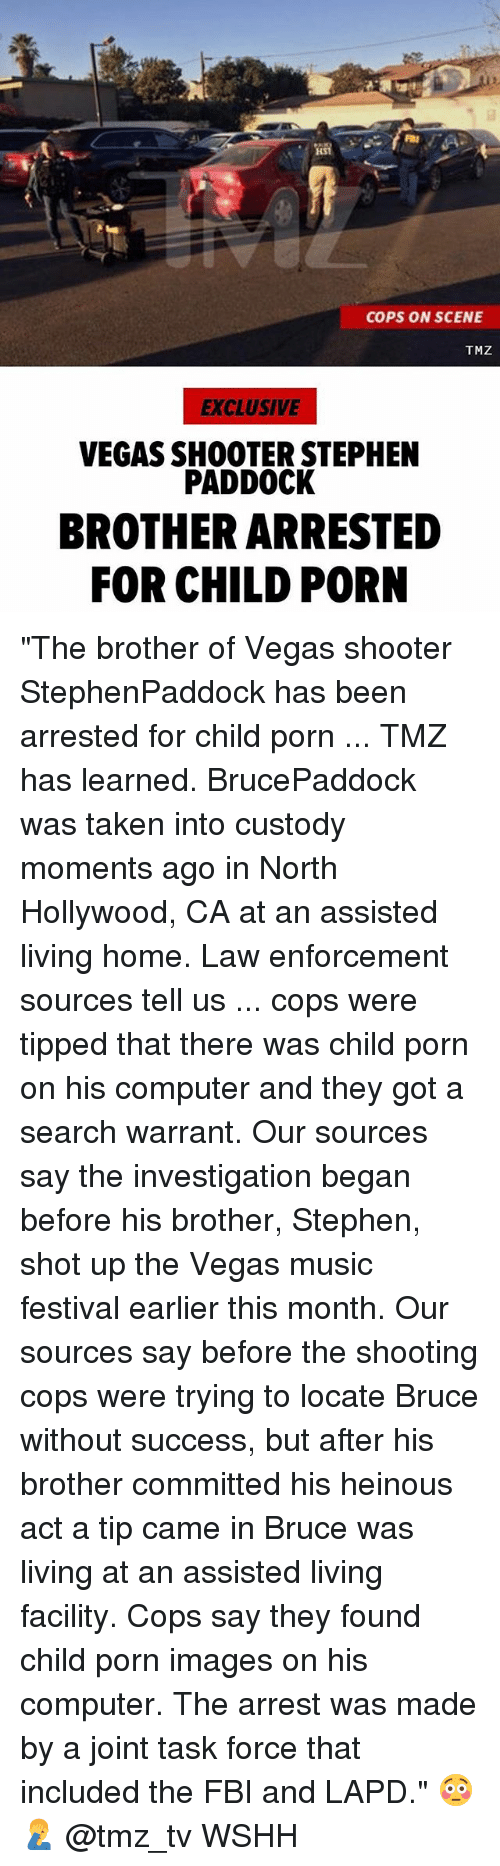 "task force: COPS ON SCENE  TMZ  EXCLUSIVE  VEGAS SHOOTER STEPHEN  PADDOCK  BROTHER ARRESTED  FOR CHILD PORN ""The brother of Vegas shooter StephenPaddock has been arrested for child porn ... TMZ has learned. BrucePaddock was taken into custody moments ago in North Hollywood, CA at an assisted living home. Law enforcement sources tell us ... cops were tipped that there was child porn on his computer and they got a search warrant. Our sources say the investigation began before his brother, Stephen, shot up the Vegas music festival earlier this month. Our sources say before the shooting cops were trying to locate Bruce without success, but after his brother committed his heinous act a tip came in Bruce was living at an assisted living facility. Cops say they found child porn images on his computer. The arrest was made by a joint task force that included the FBI and LAPD."" 😳🤦‍♂️ @tmz_tv WSHH"